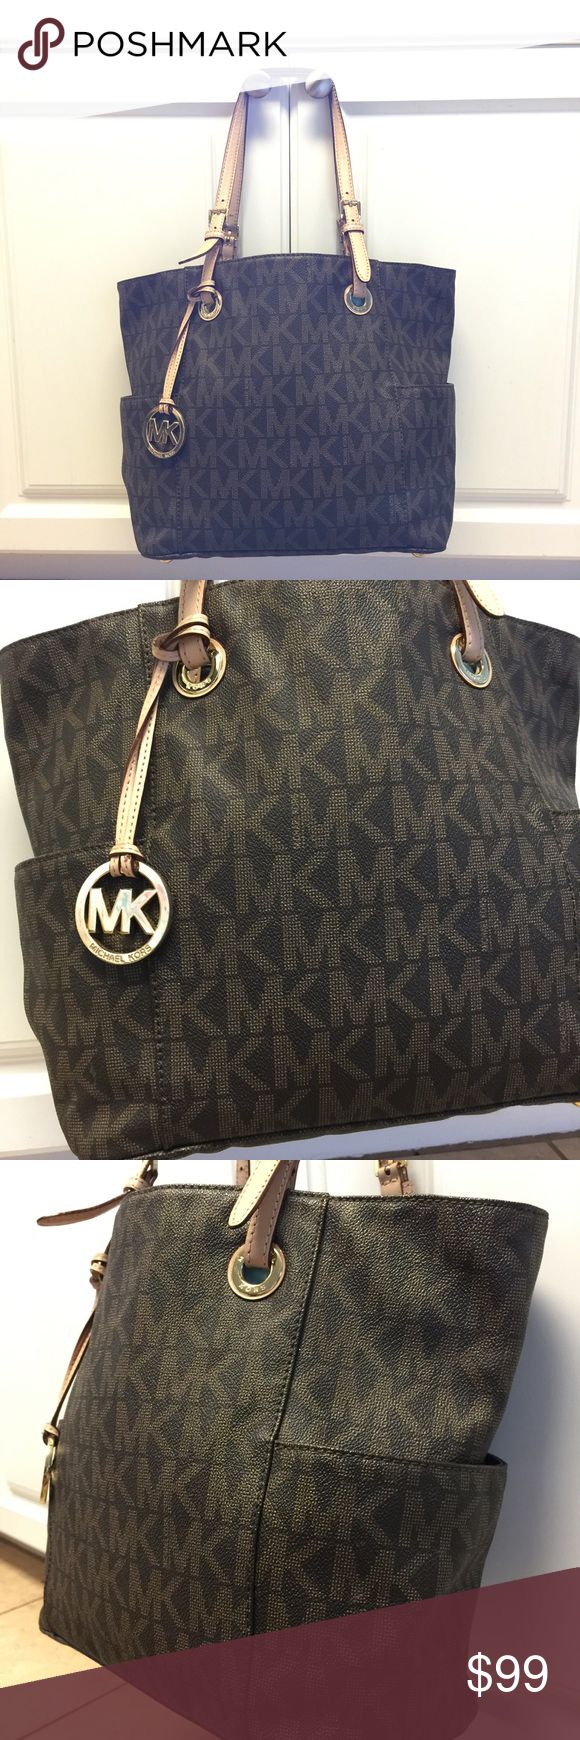 Michael Kors Signature Jet Set Tote Michael Kors Signature Jet Set Tote in brown/tan. Exterior has pockets on both sides, and interior is extremely spacious. Interior has one zippered pocket and 4 open pockets on sides as well as one large zippered pocket down the middle. This bag is pre loved and does have some signs of wear, but still has a lot of life left! Some minor wear on straps and random markings inside (pens and makeup). No rips or tears. Leather is in fabulous shape! Bag measures…